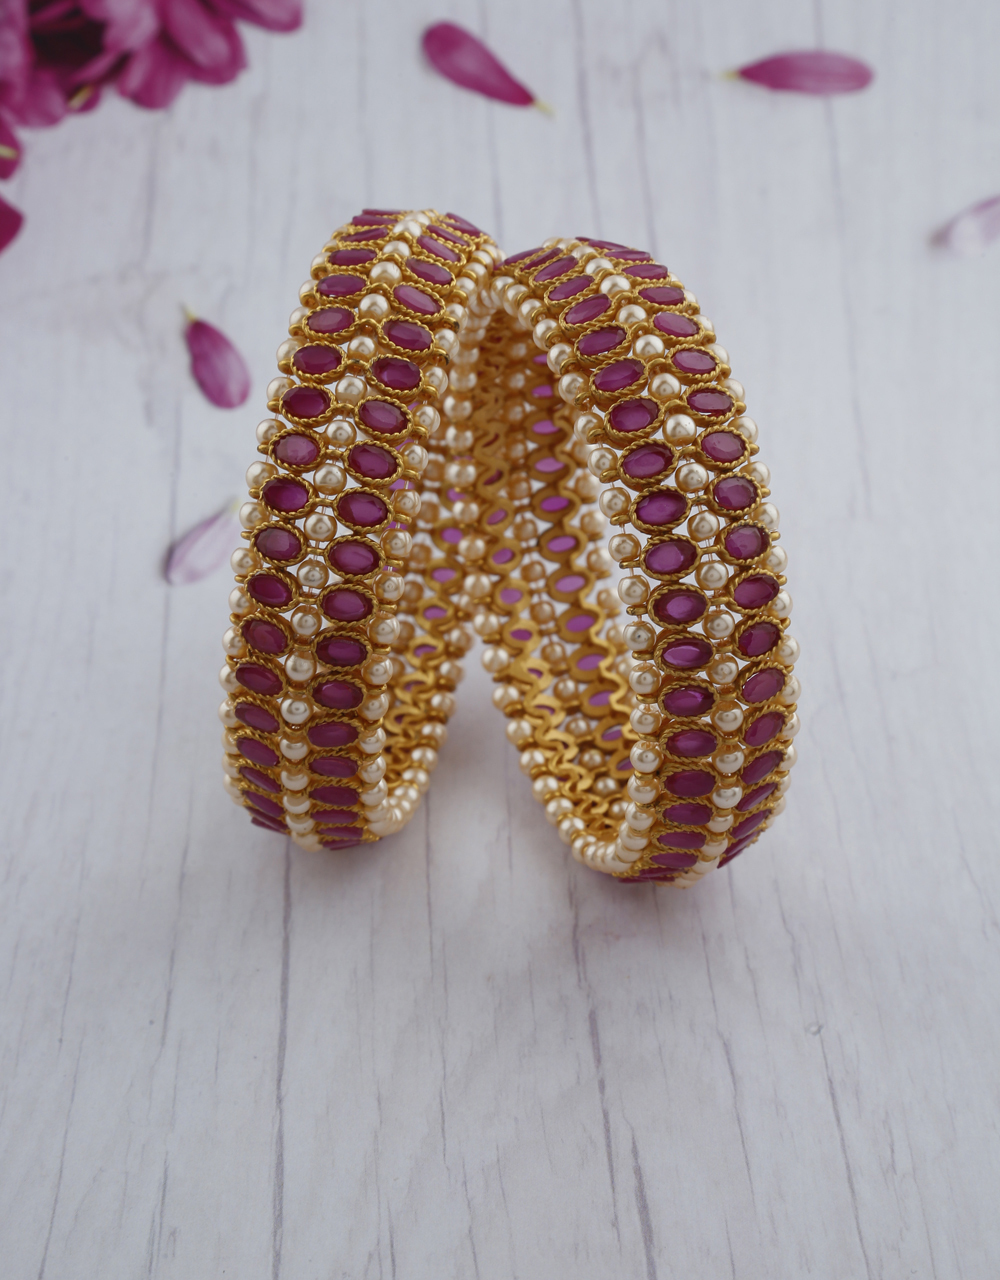 Adorable design studded with pink stone bangles for women